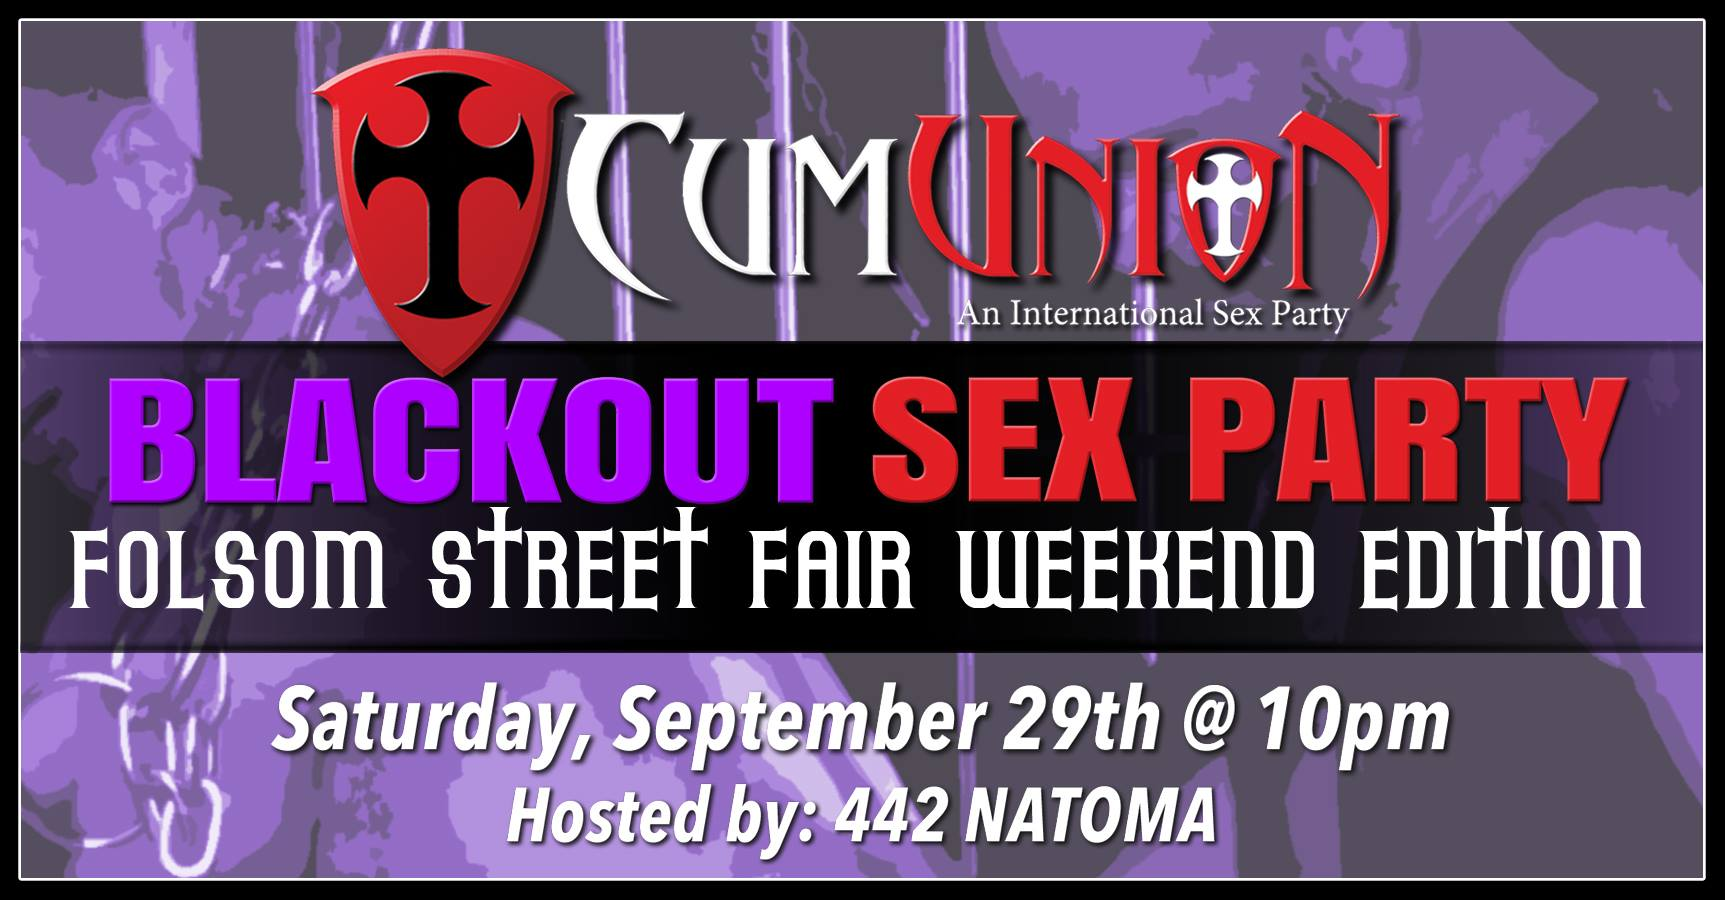 CumUnion Blackout Sex Party Folsom Street Fair Weekend Edition